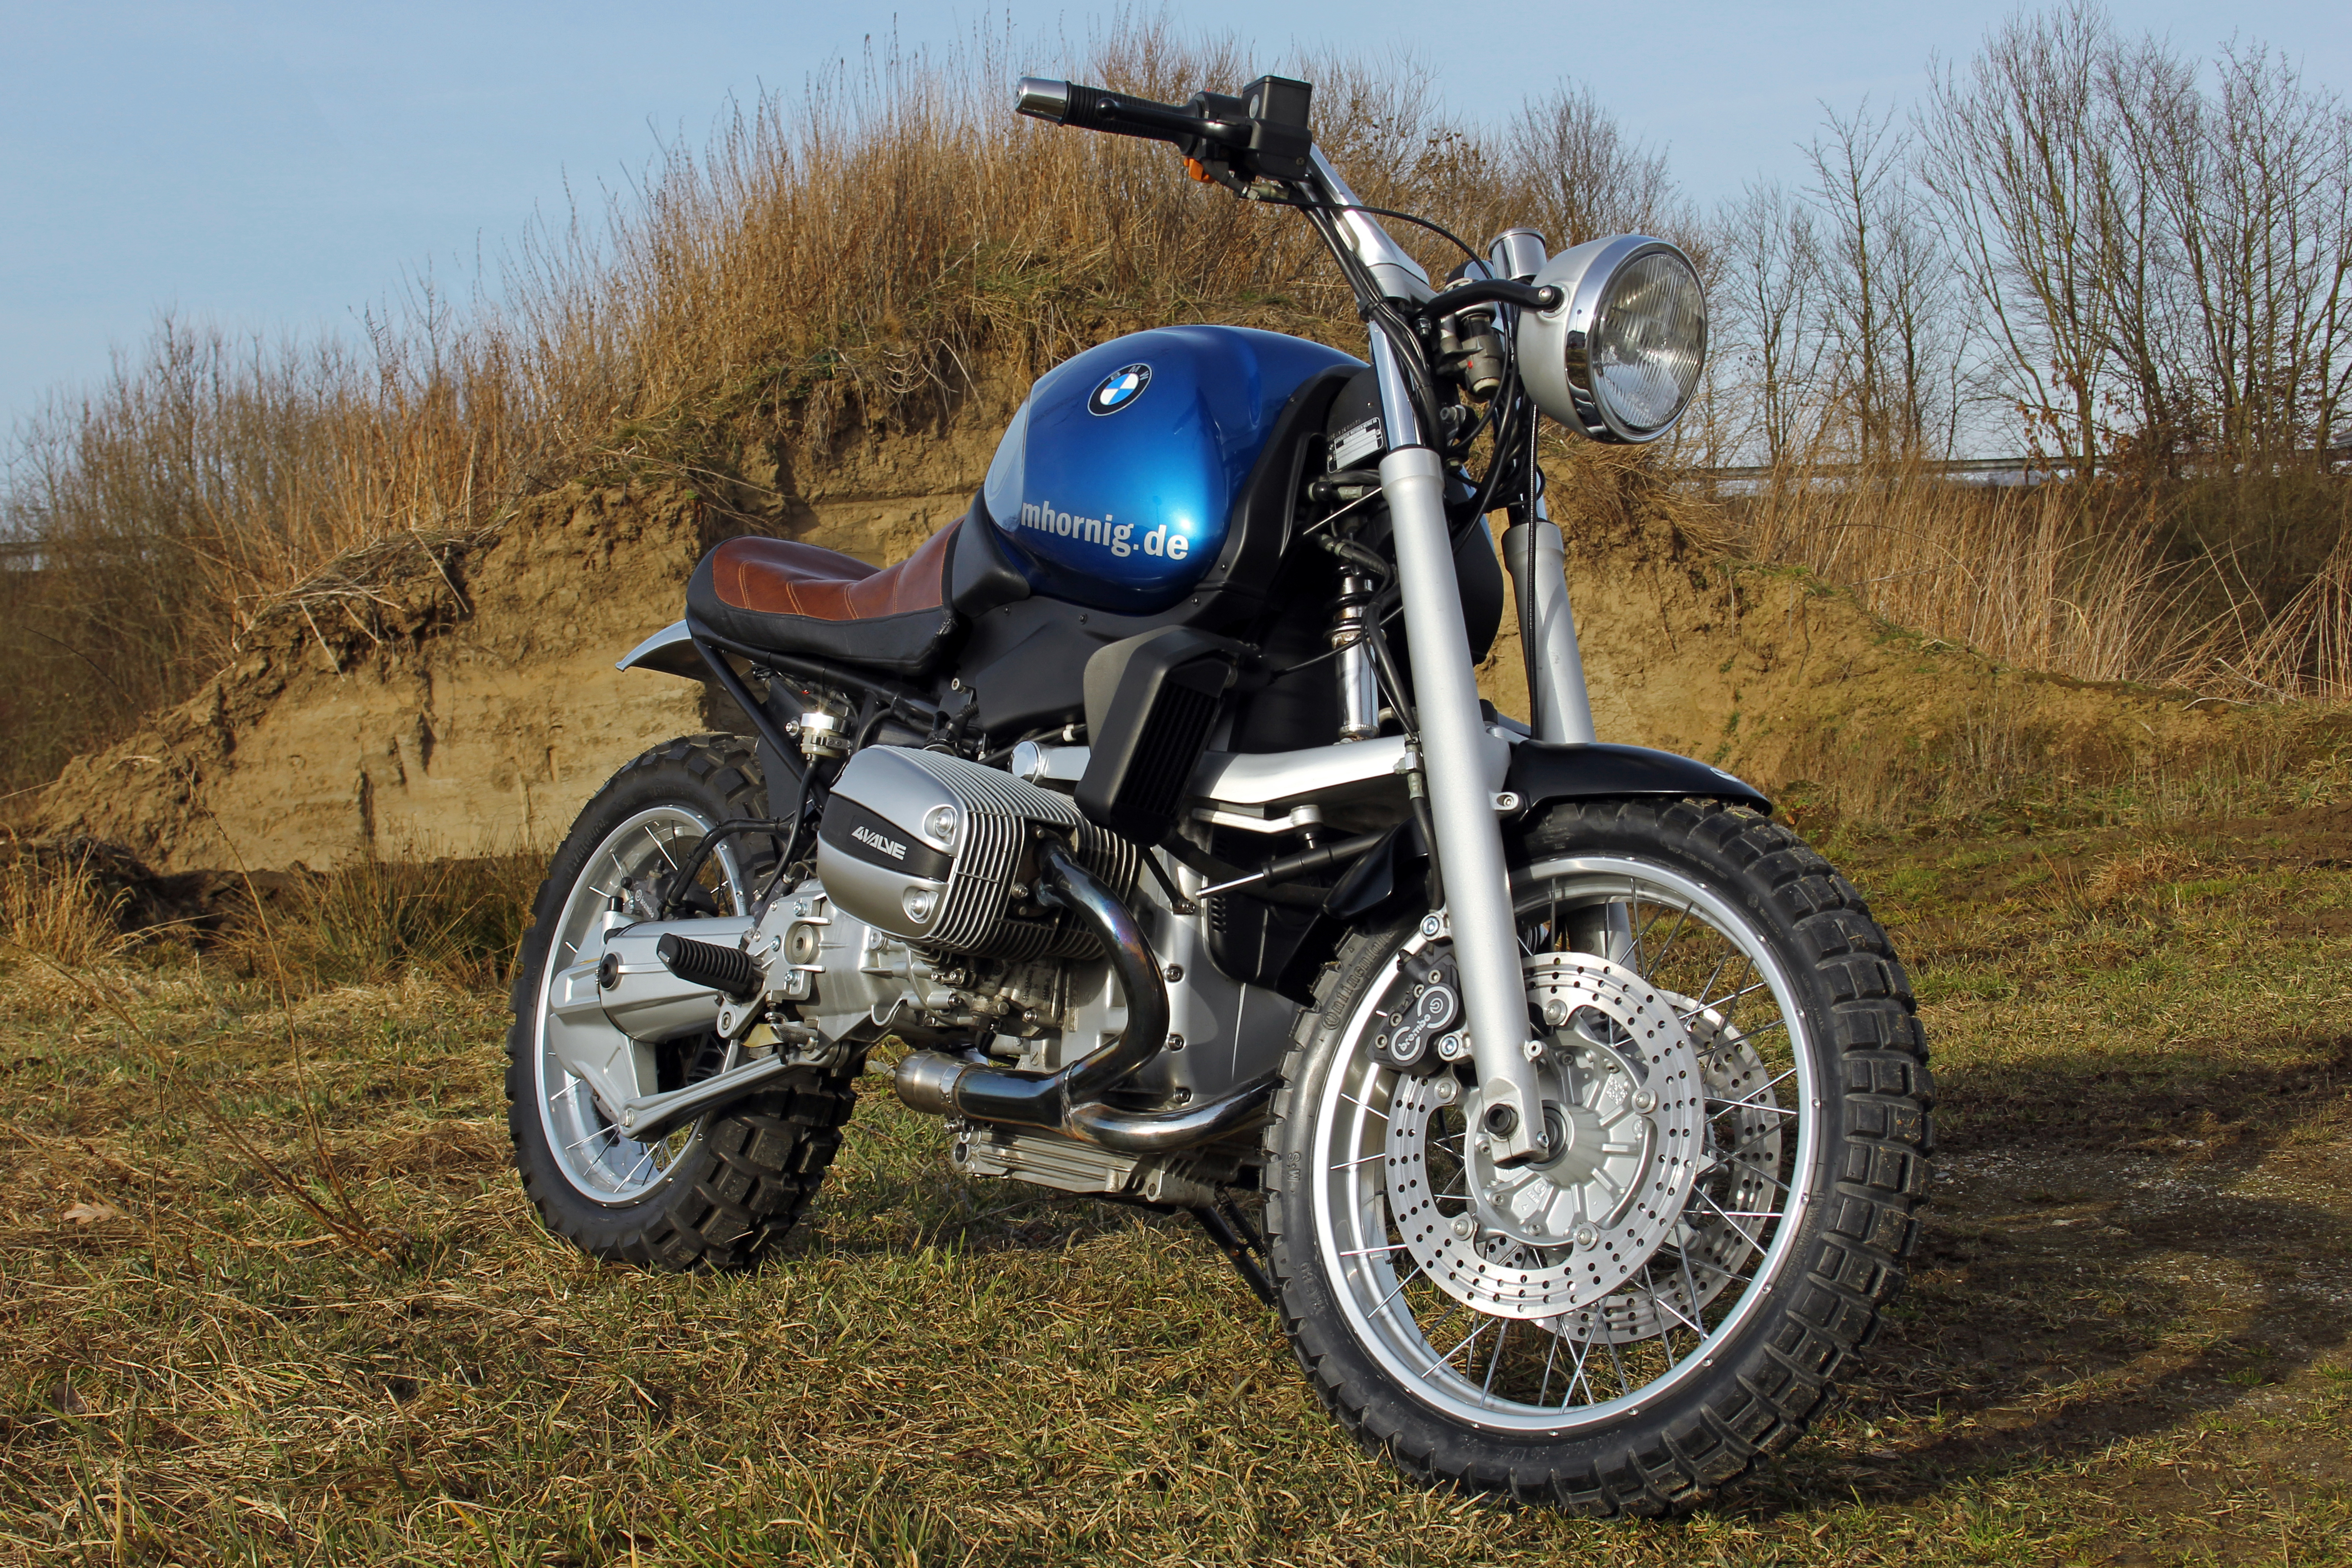 Bmw R1100r Scrambler Conversion Removing As Much As Possible